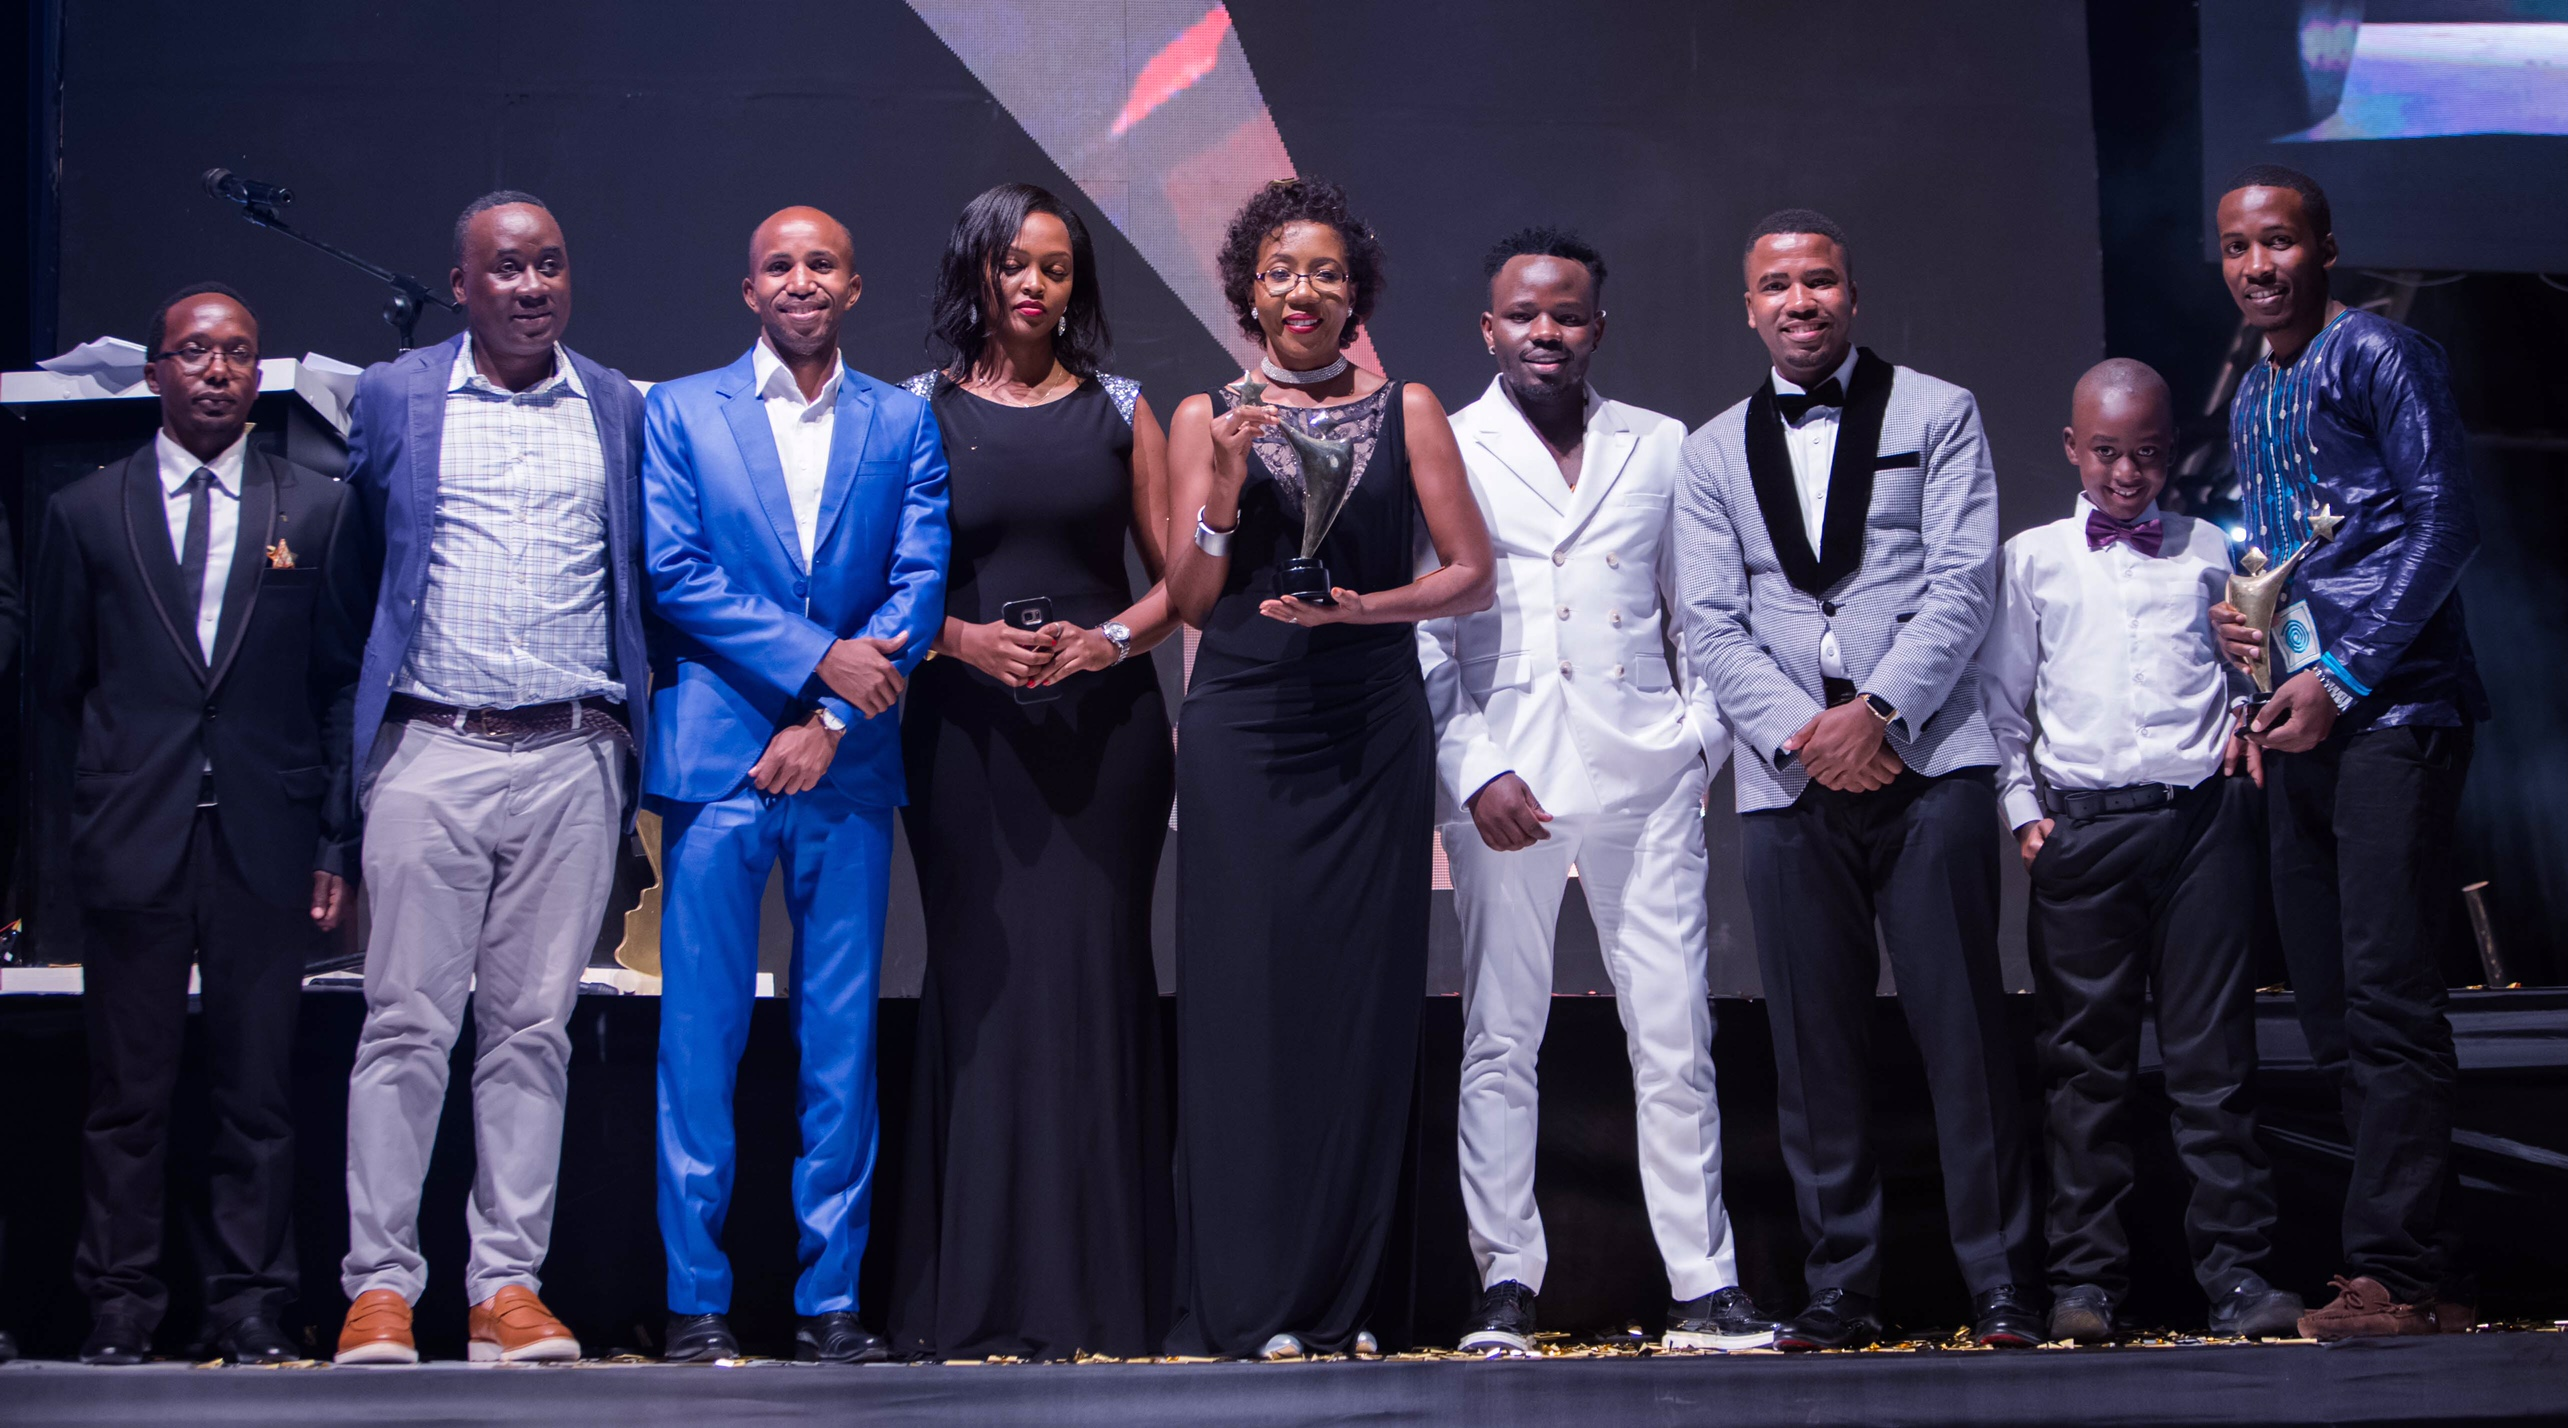 Vodafone Marketing Director, Progress Chisenga (2nd right) holding and representing the overall Young Achiever Award poses for a picture with (left –right) Founder of the Awards Awel Uwihanganye; Social Entrepreneurship Award winner Muhammed Kisirisa aka Slum Ambassador; Fiona Kayitesi, Vodafone Youth Program Manager; Creative Arts-Fashion Award winner Brian Ahumuza of Abryanz Collection; and Humphrey Nabimanya, the Team Leader & Founder of Reach A Hand Uganda at the prestigious 2017 Young Achievers Awards recently.